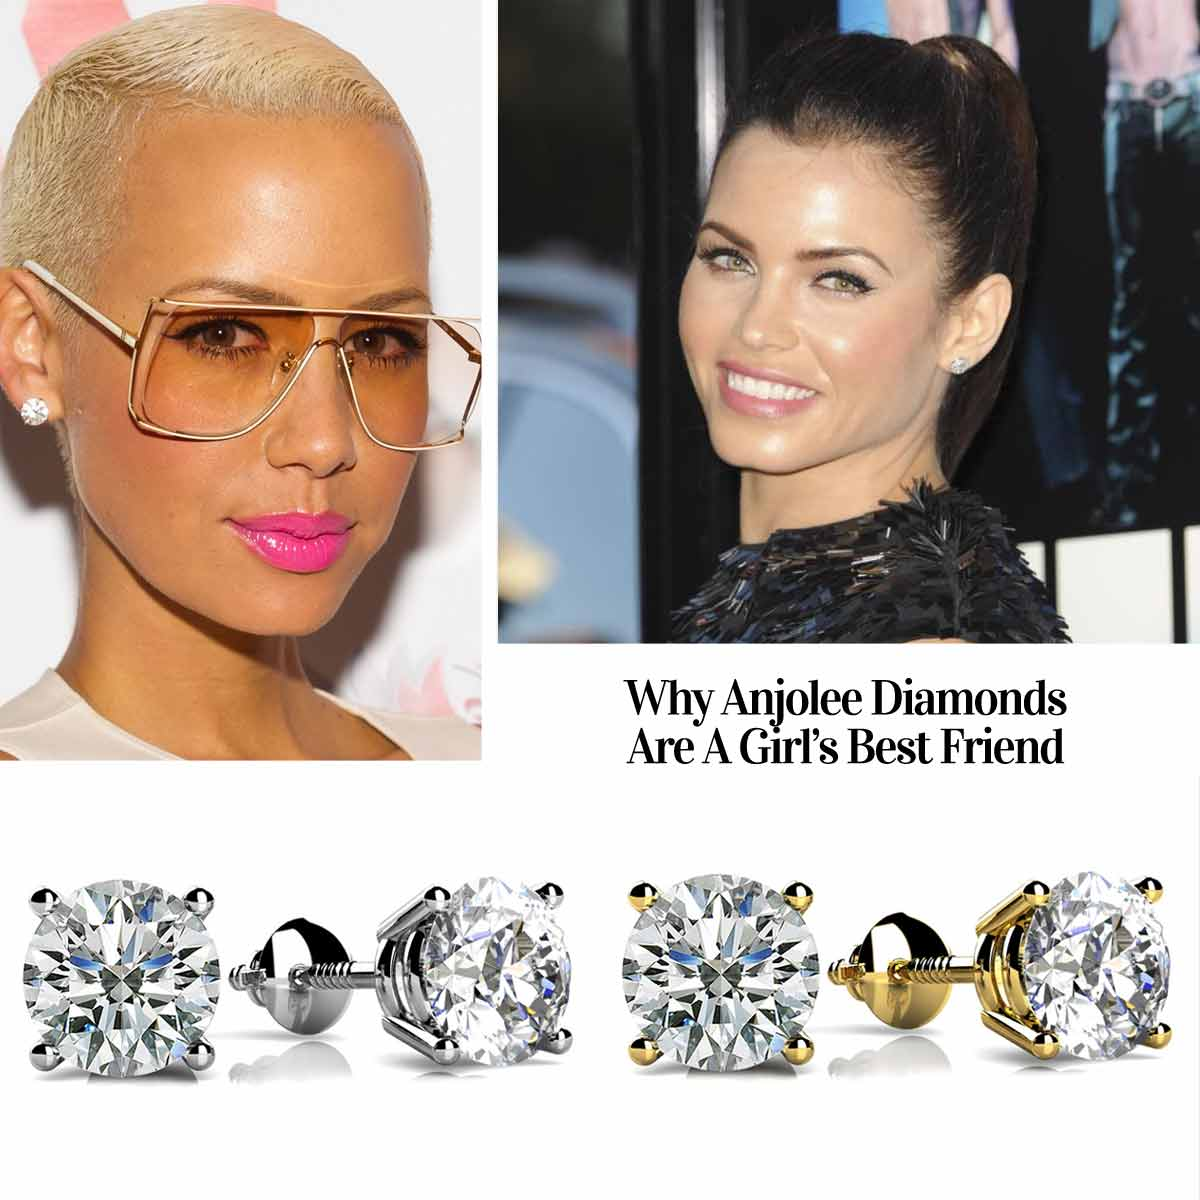 Why Anjolee Diamonds Are A Girl's Best Friend